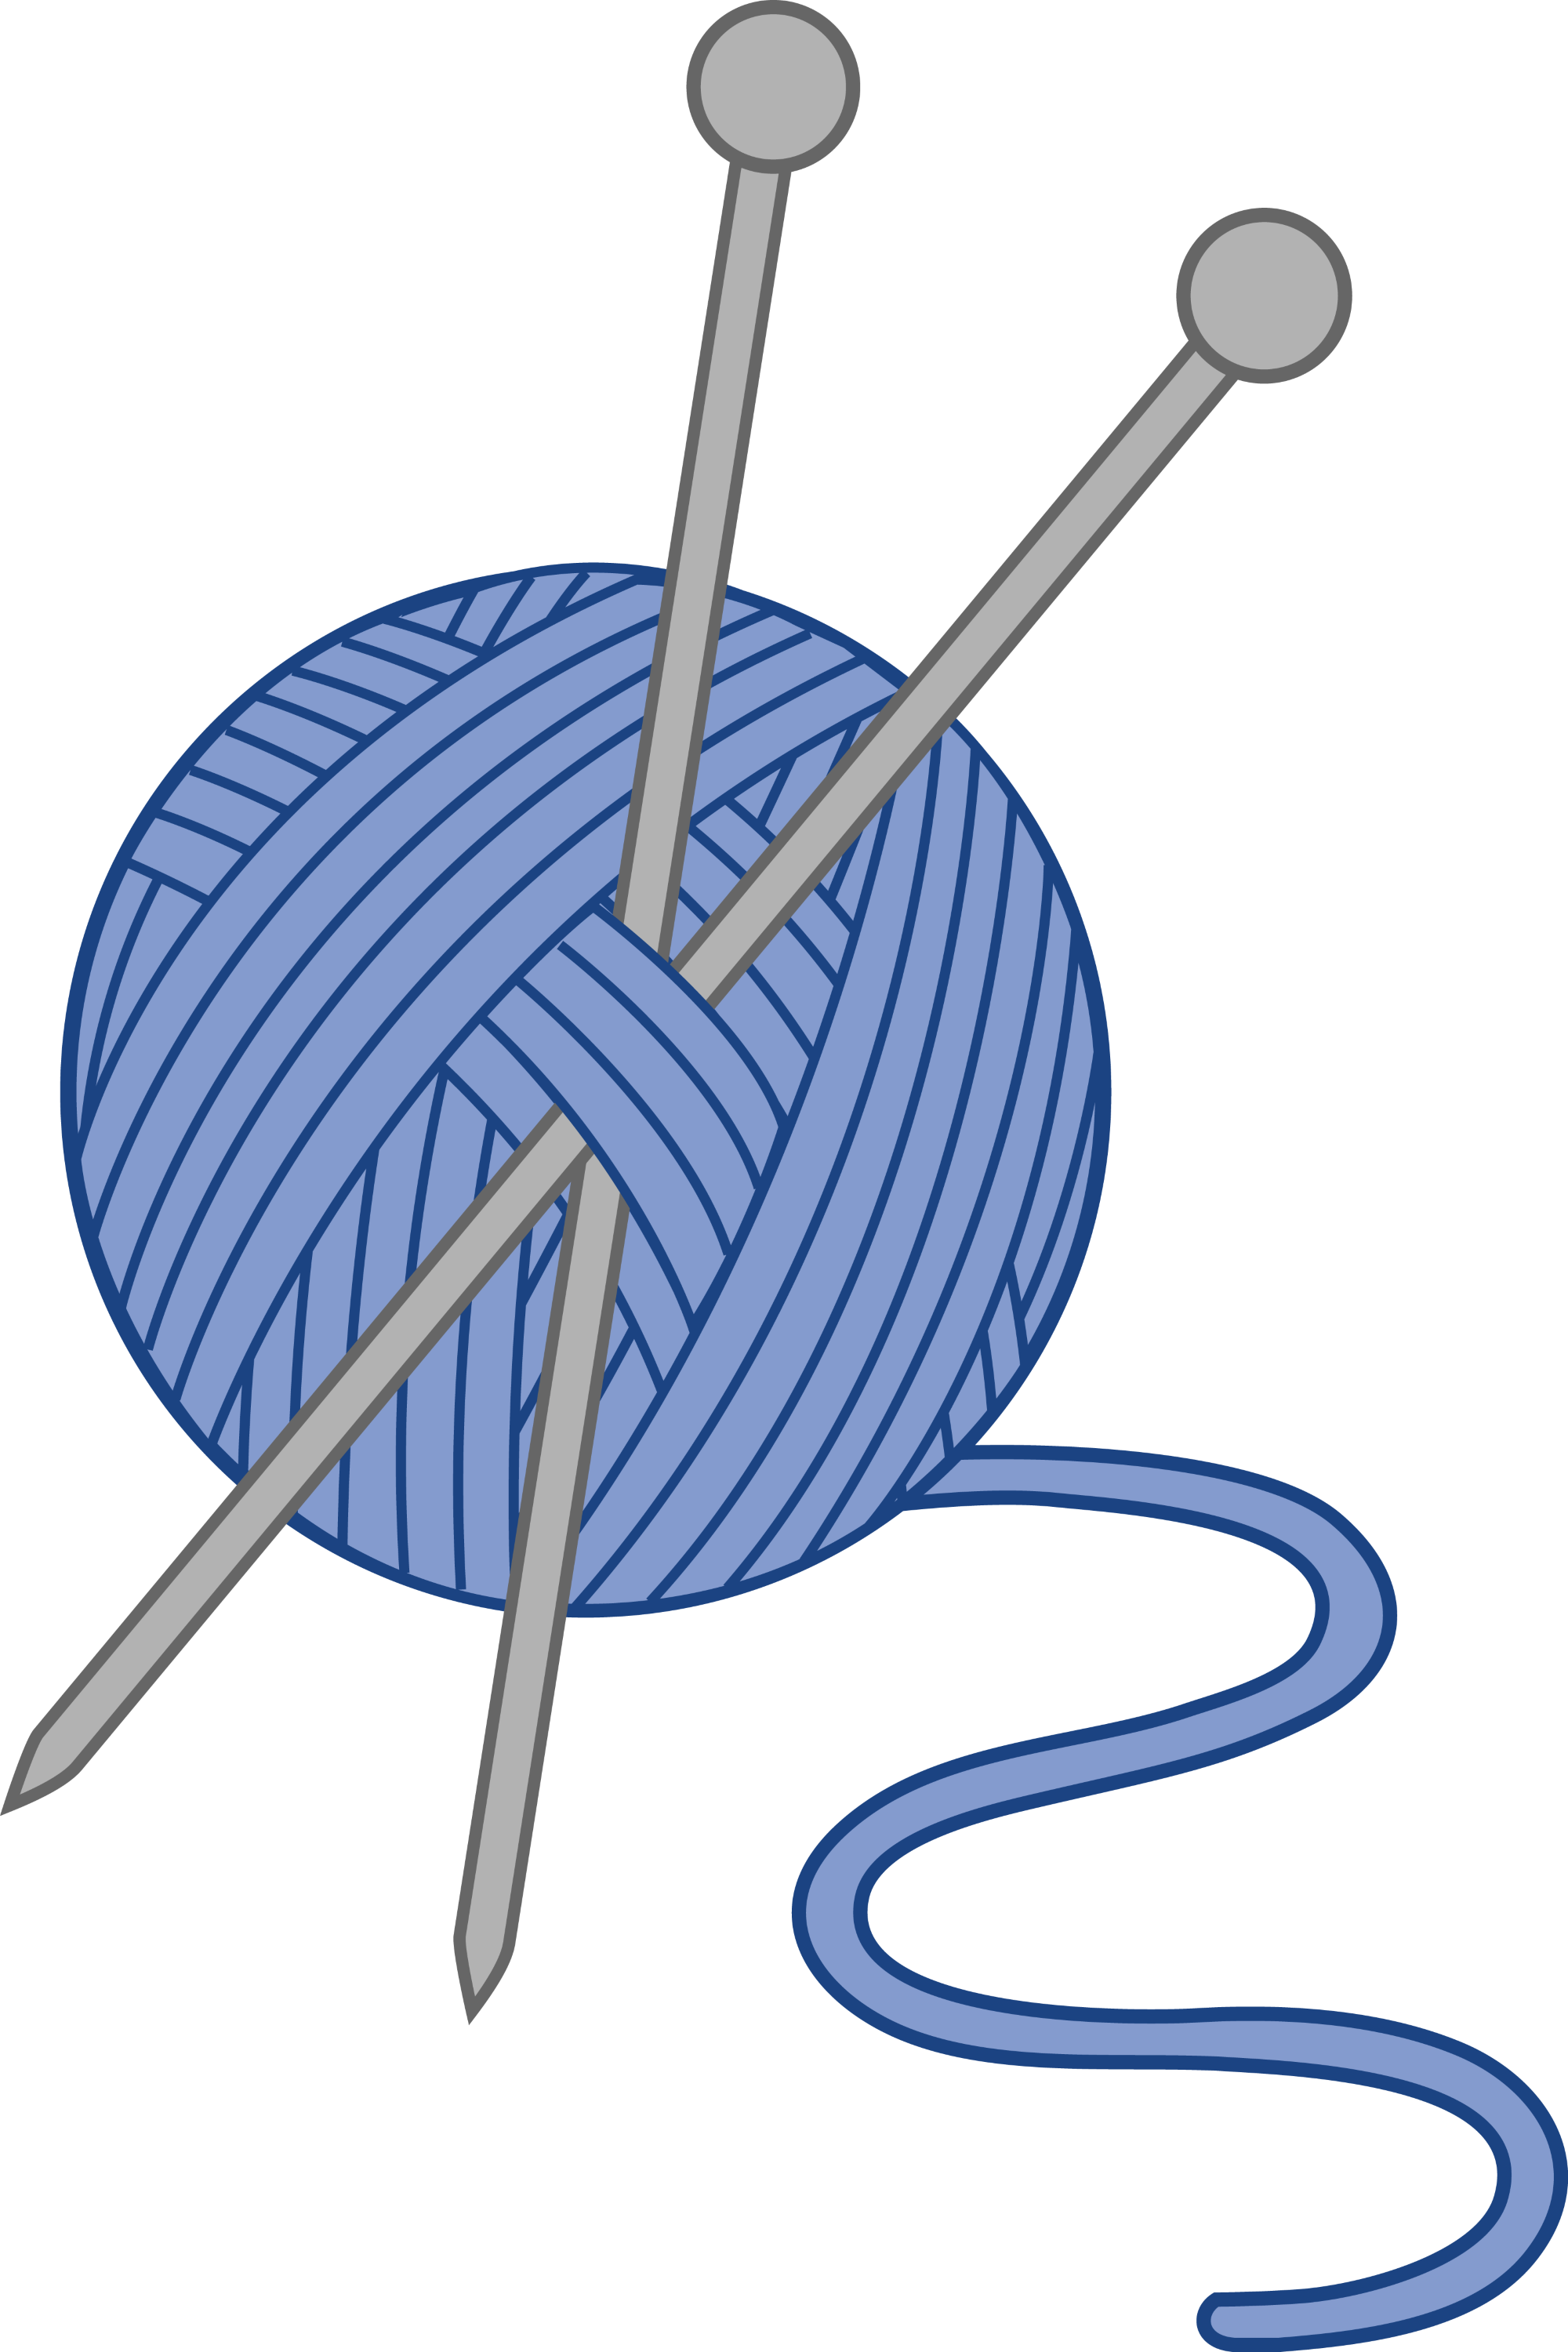 Knitting Needles Clip Art : Blue yarn and knitting needles free clip art